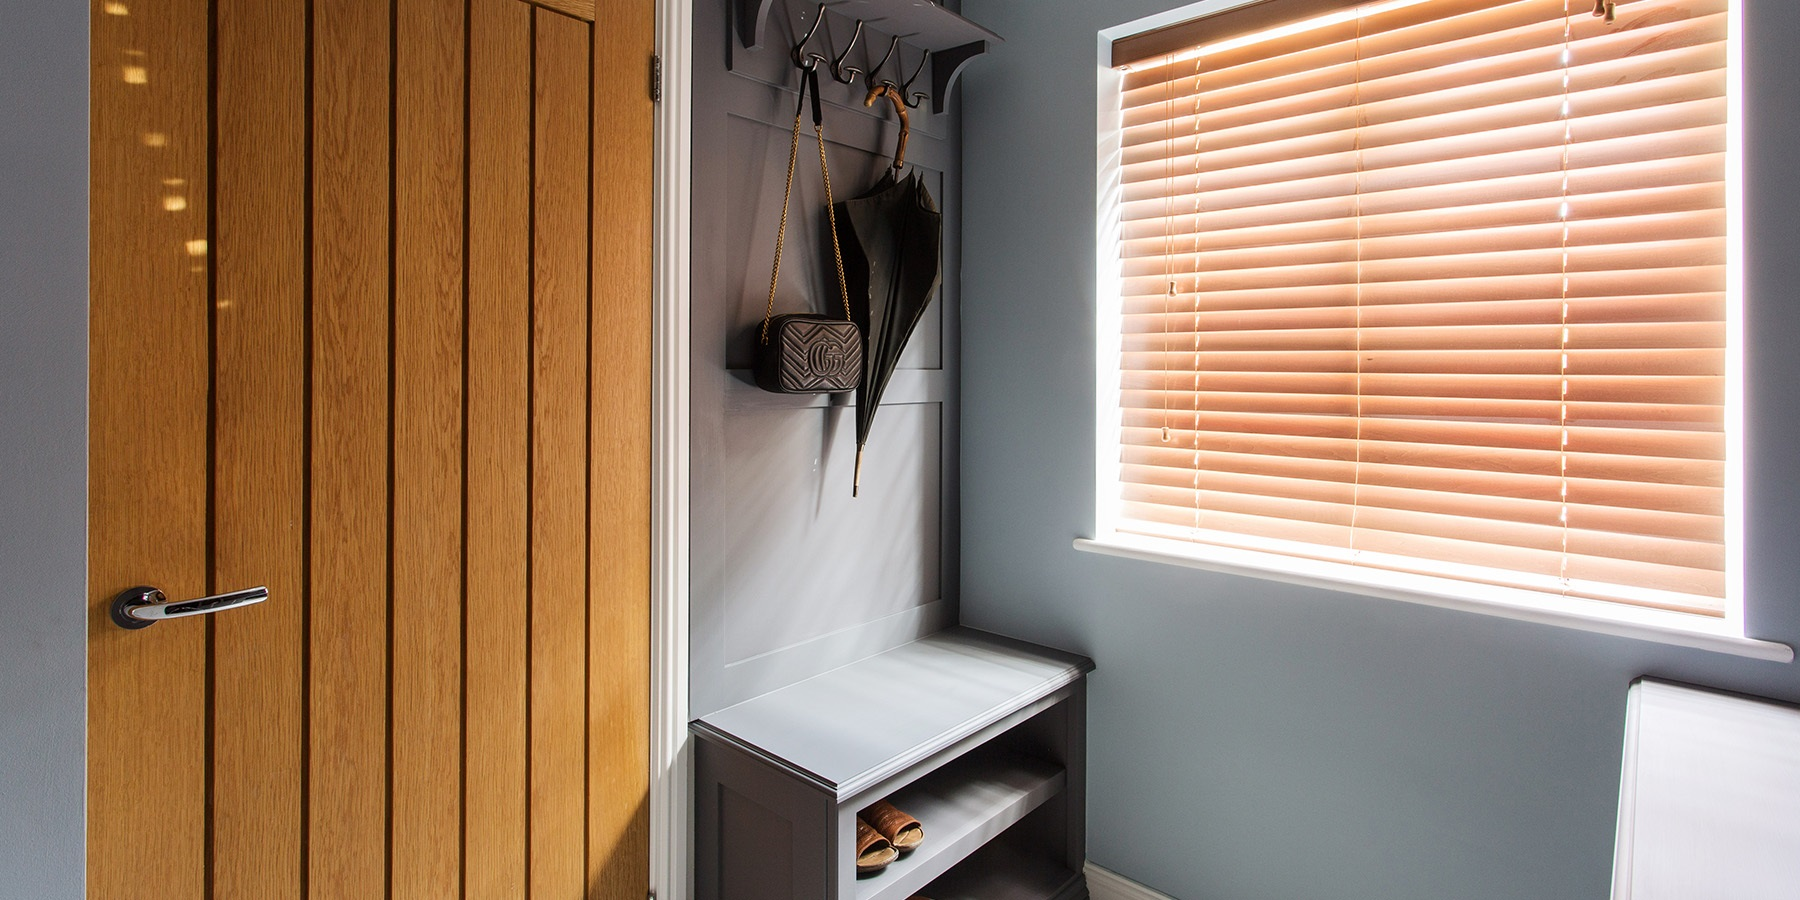 Bespoke Bootroom & Entrance Hall - Handmade bootroom furniture with shaker panelling, bench seating and coat hooks.